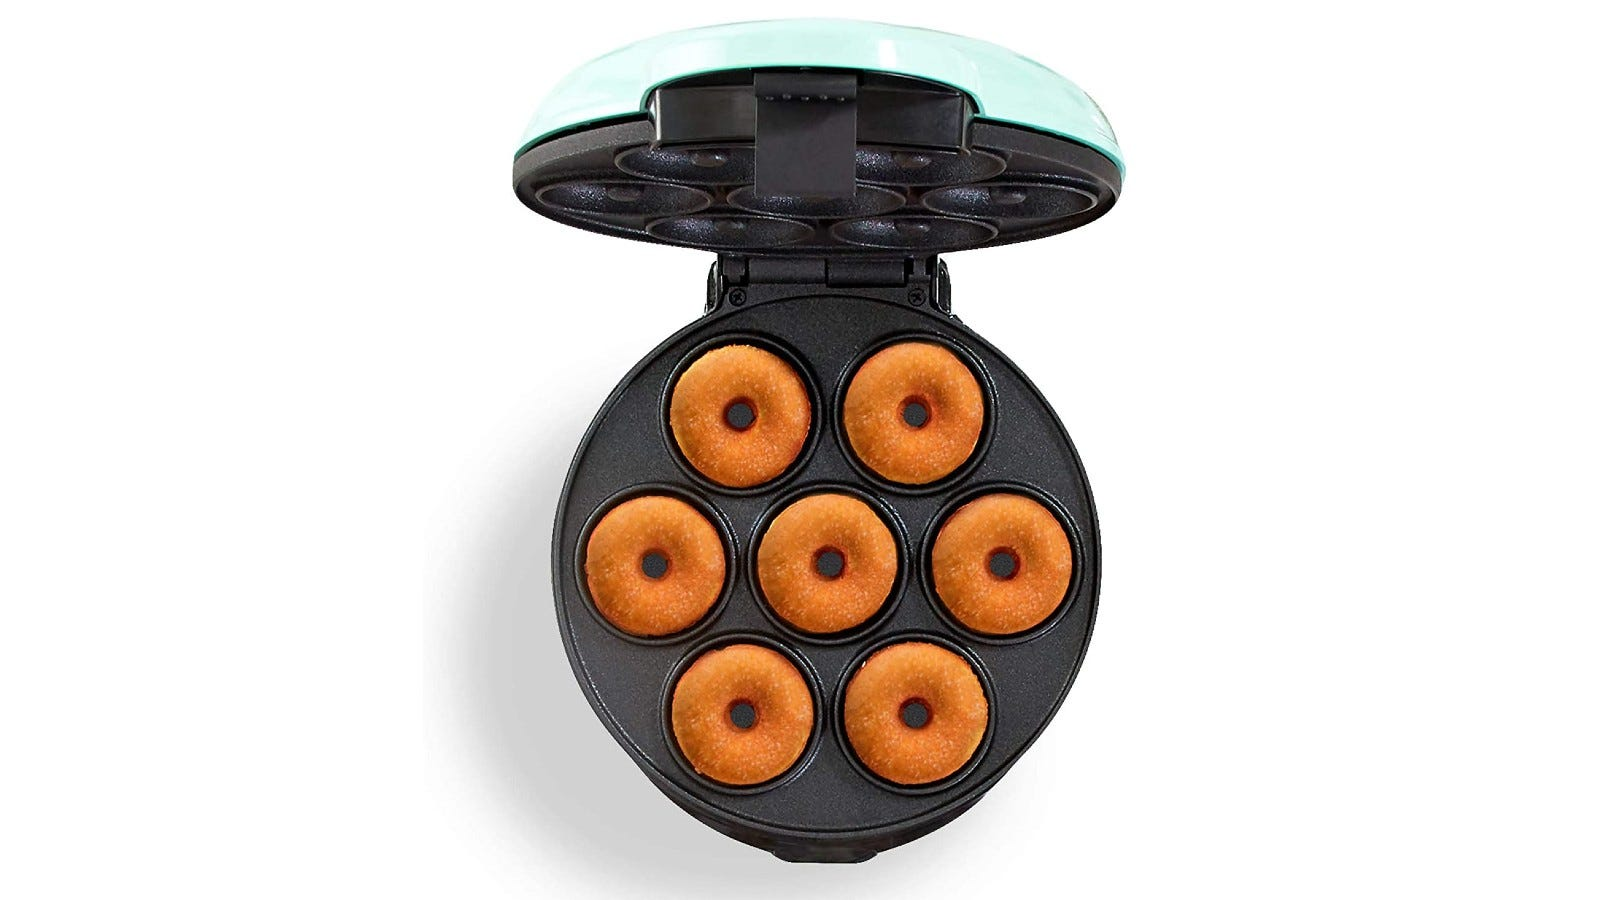 an open donut maker with seven golden donuts inside the grooves